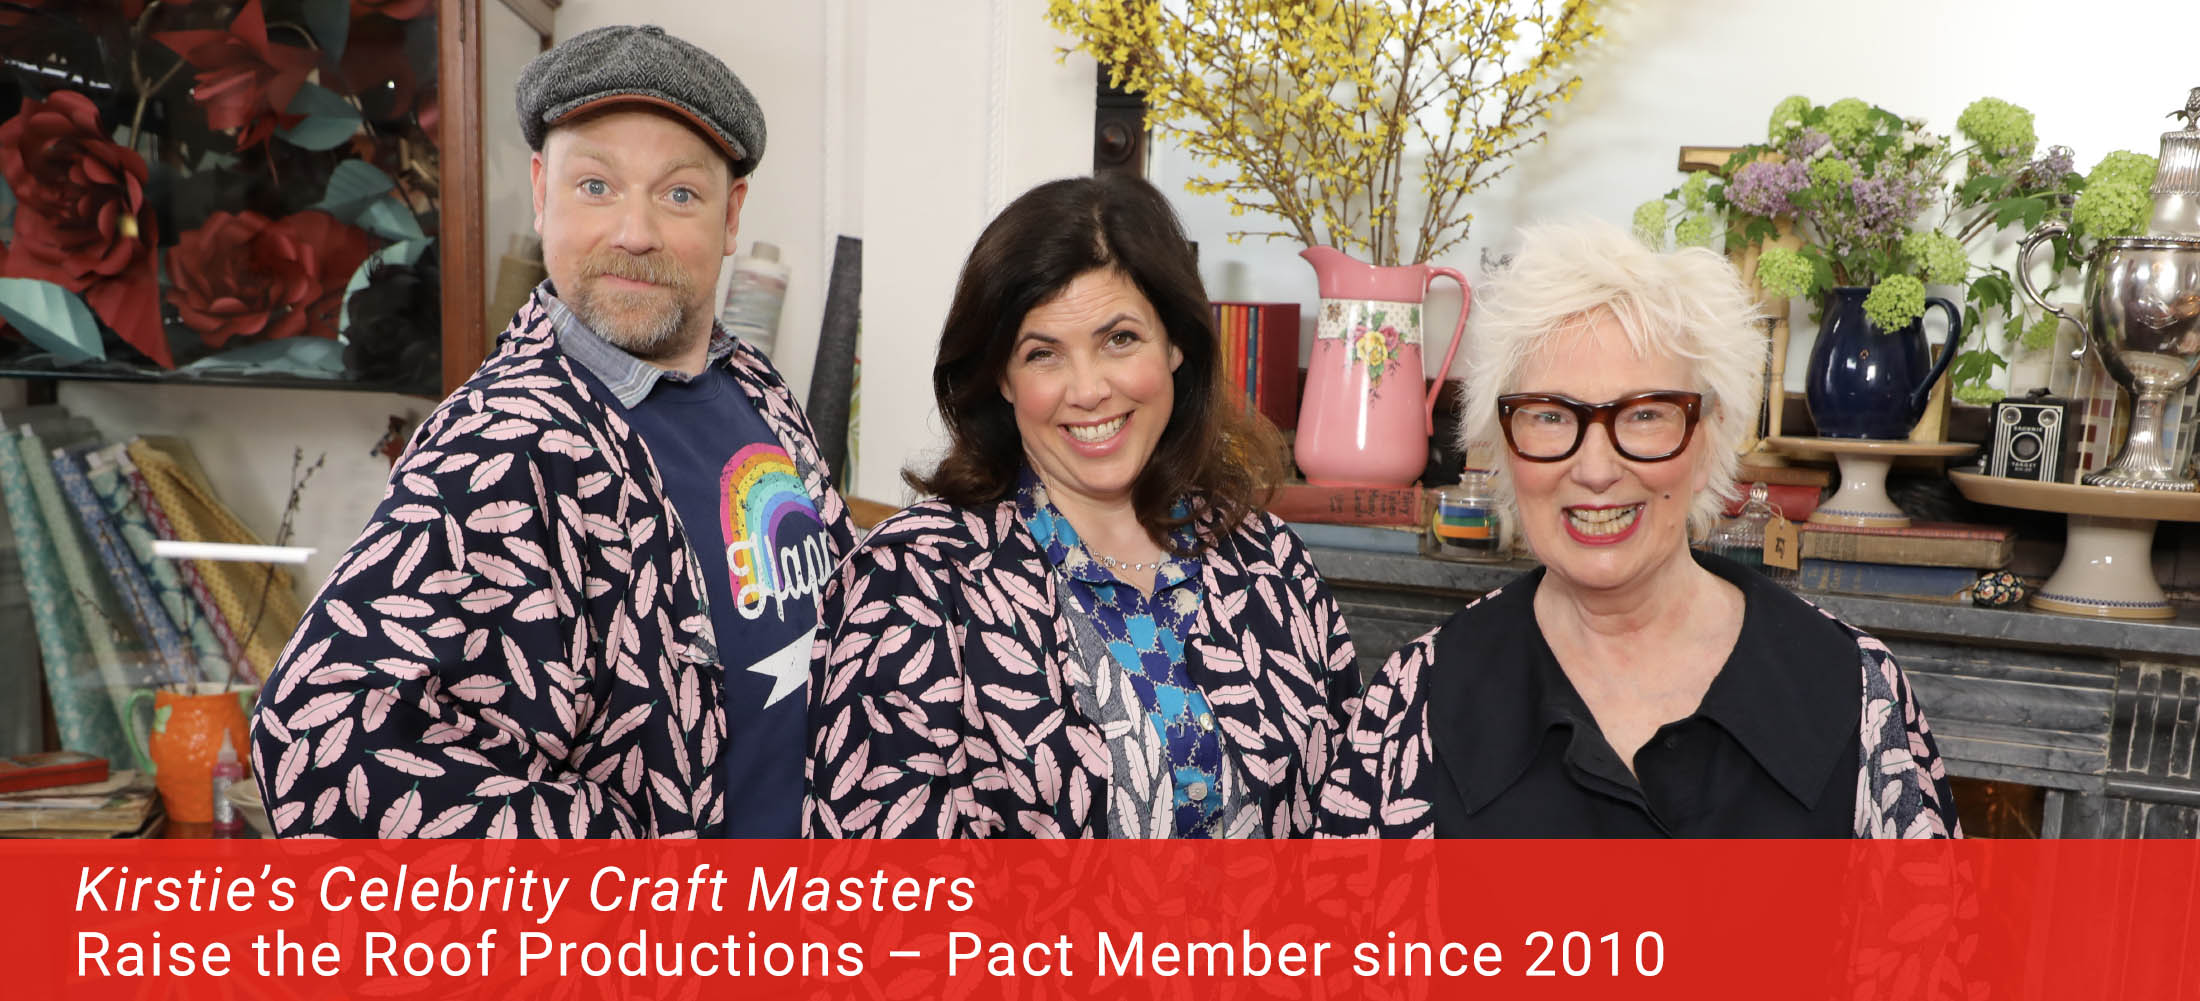 Image: Kirstie's Celebrity Craft Masters, made by Raise the Roof Productions, a Pact Member since 2010